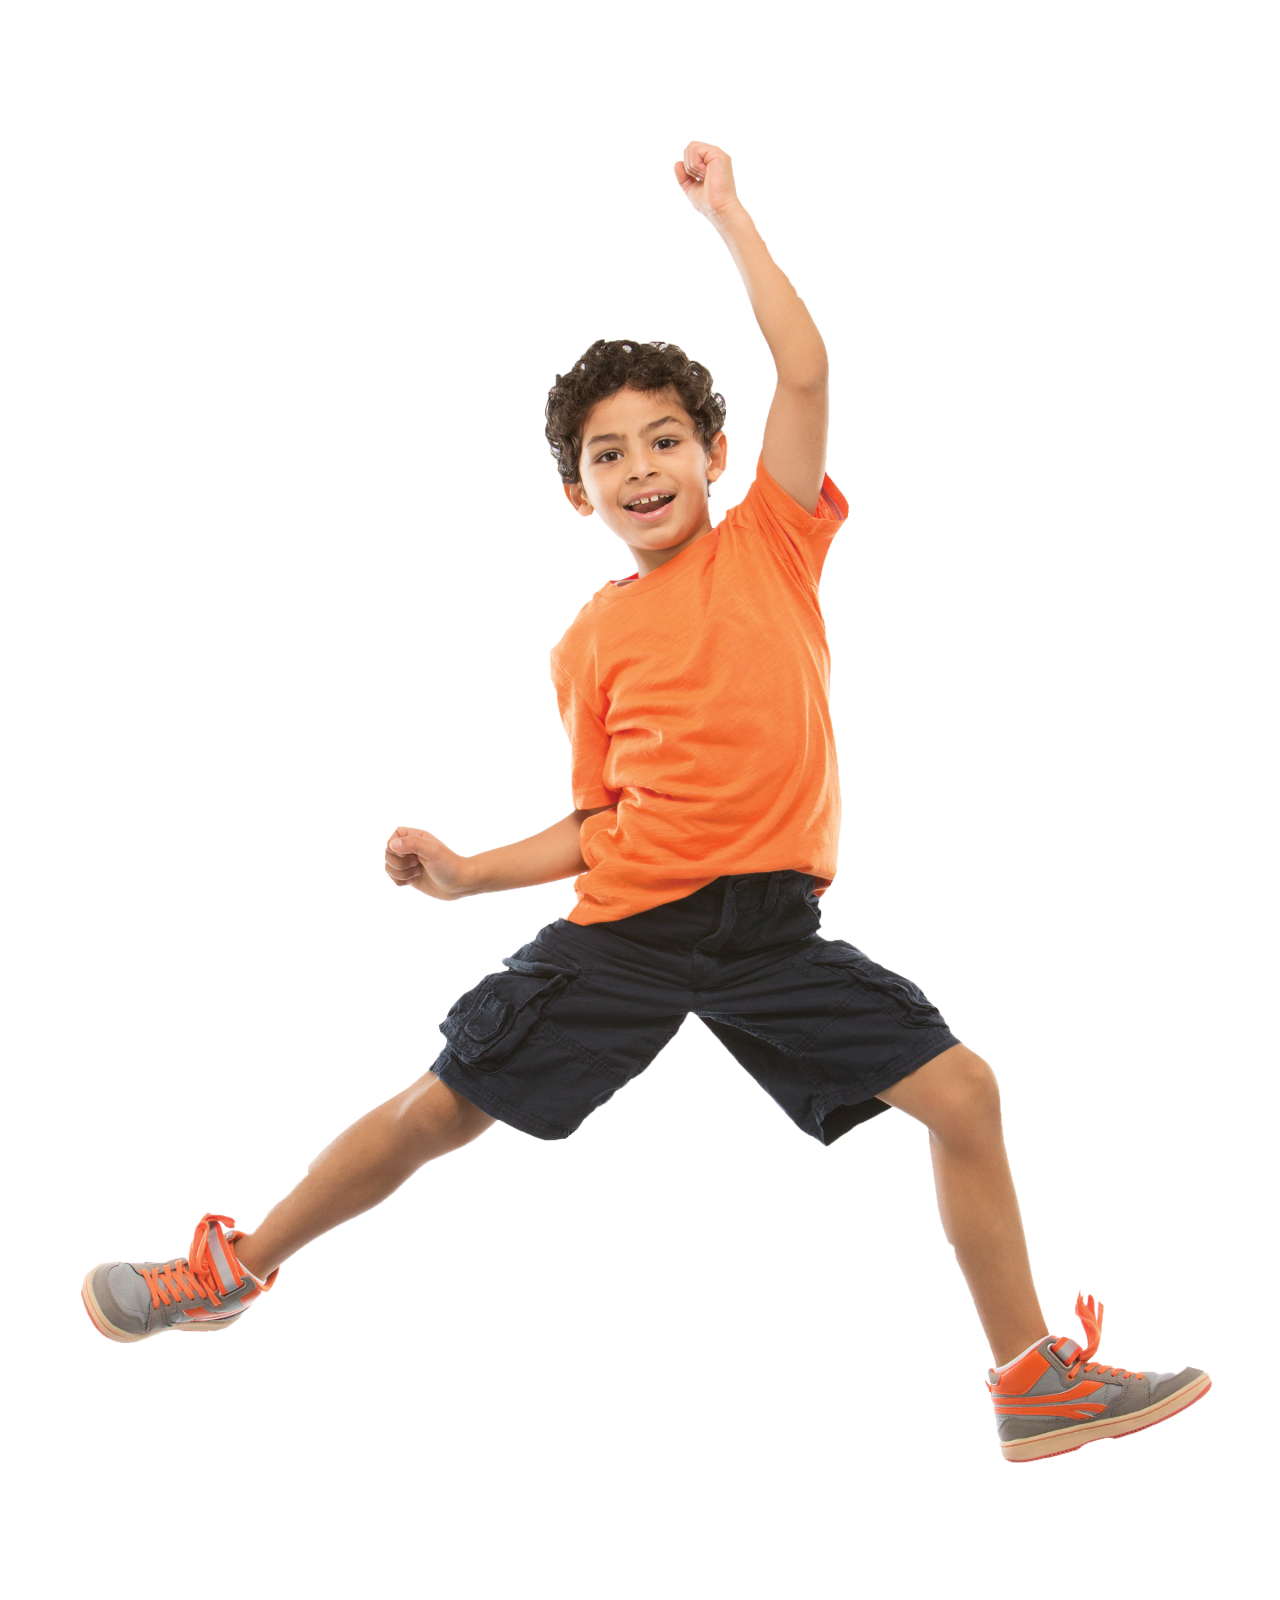 kid jumping orange